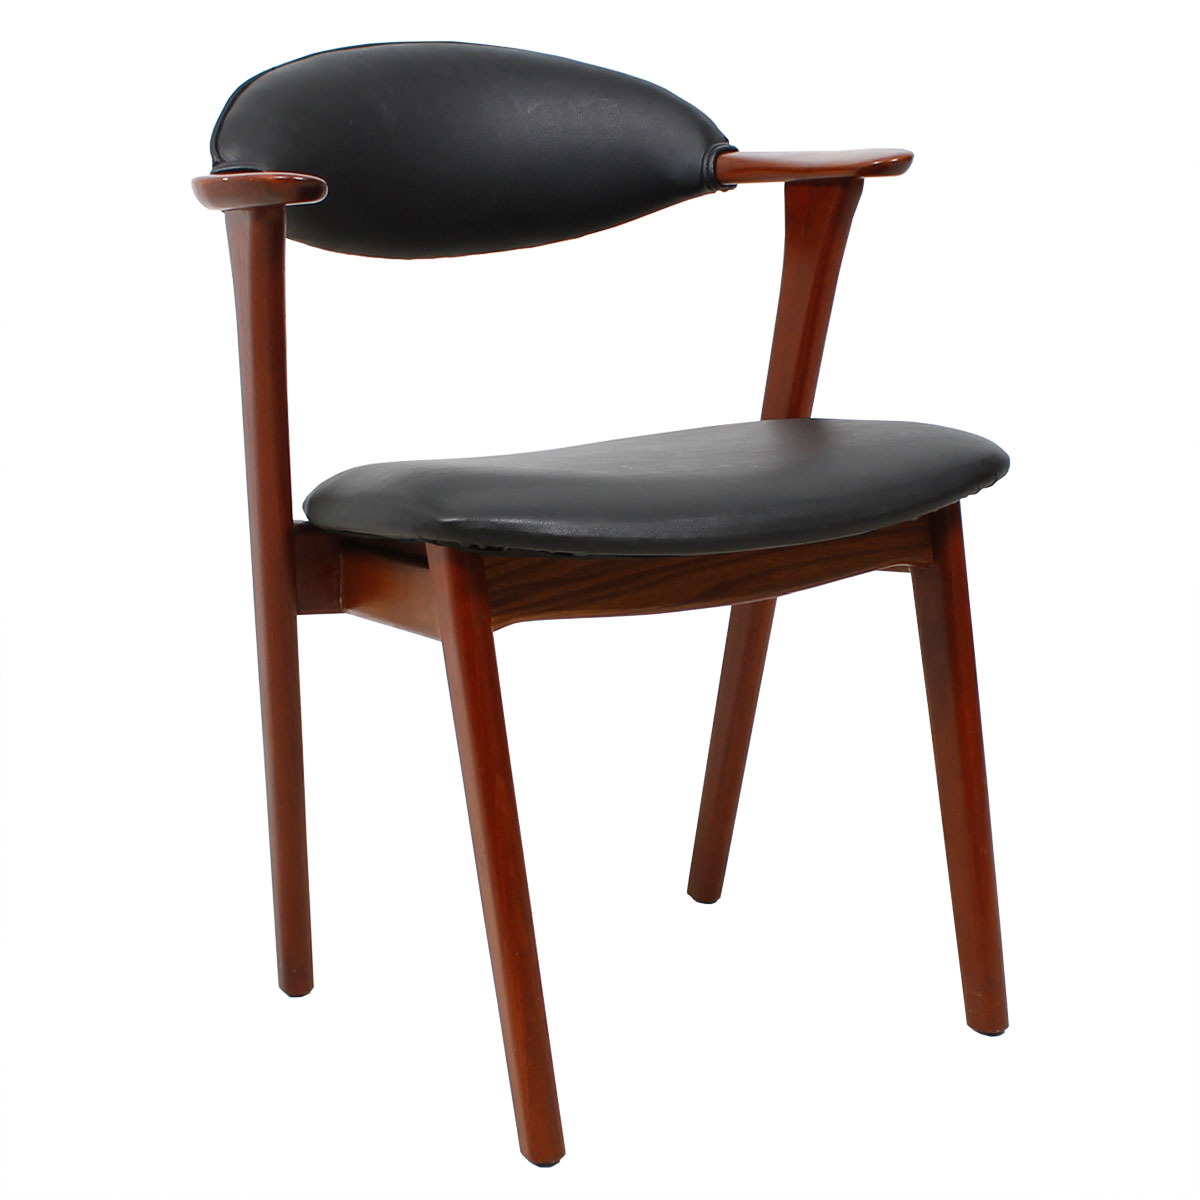 Danish Modern Teak Arm Chair by Erik Kirkegaard